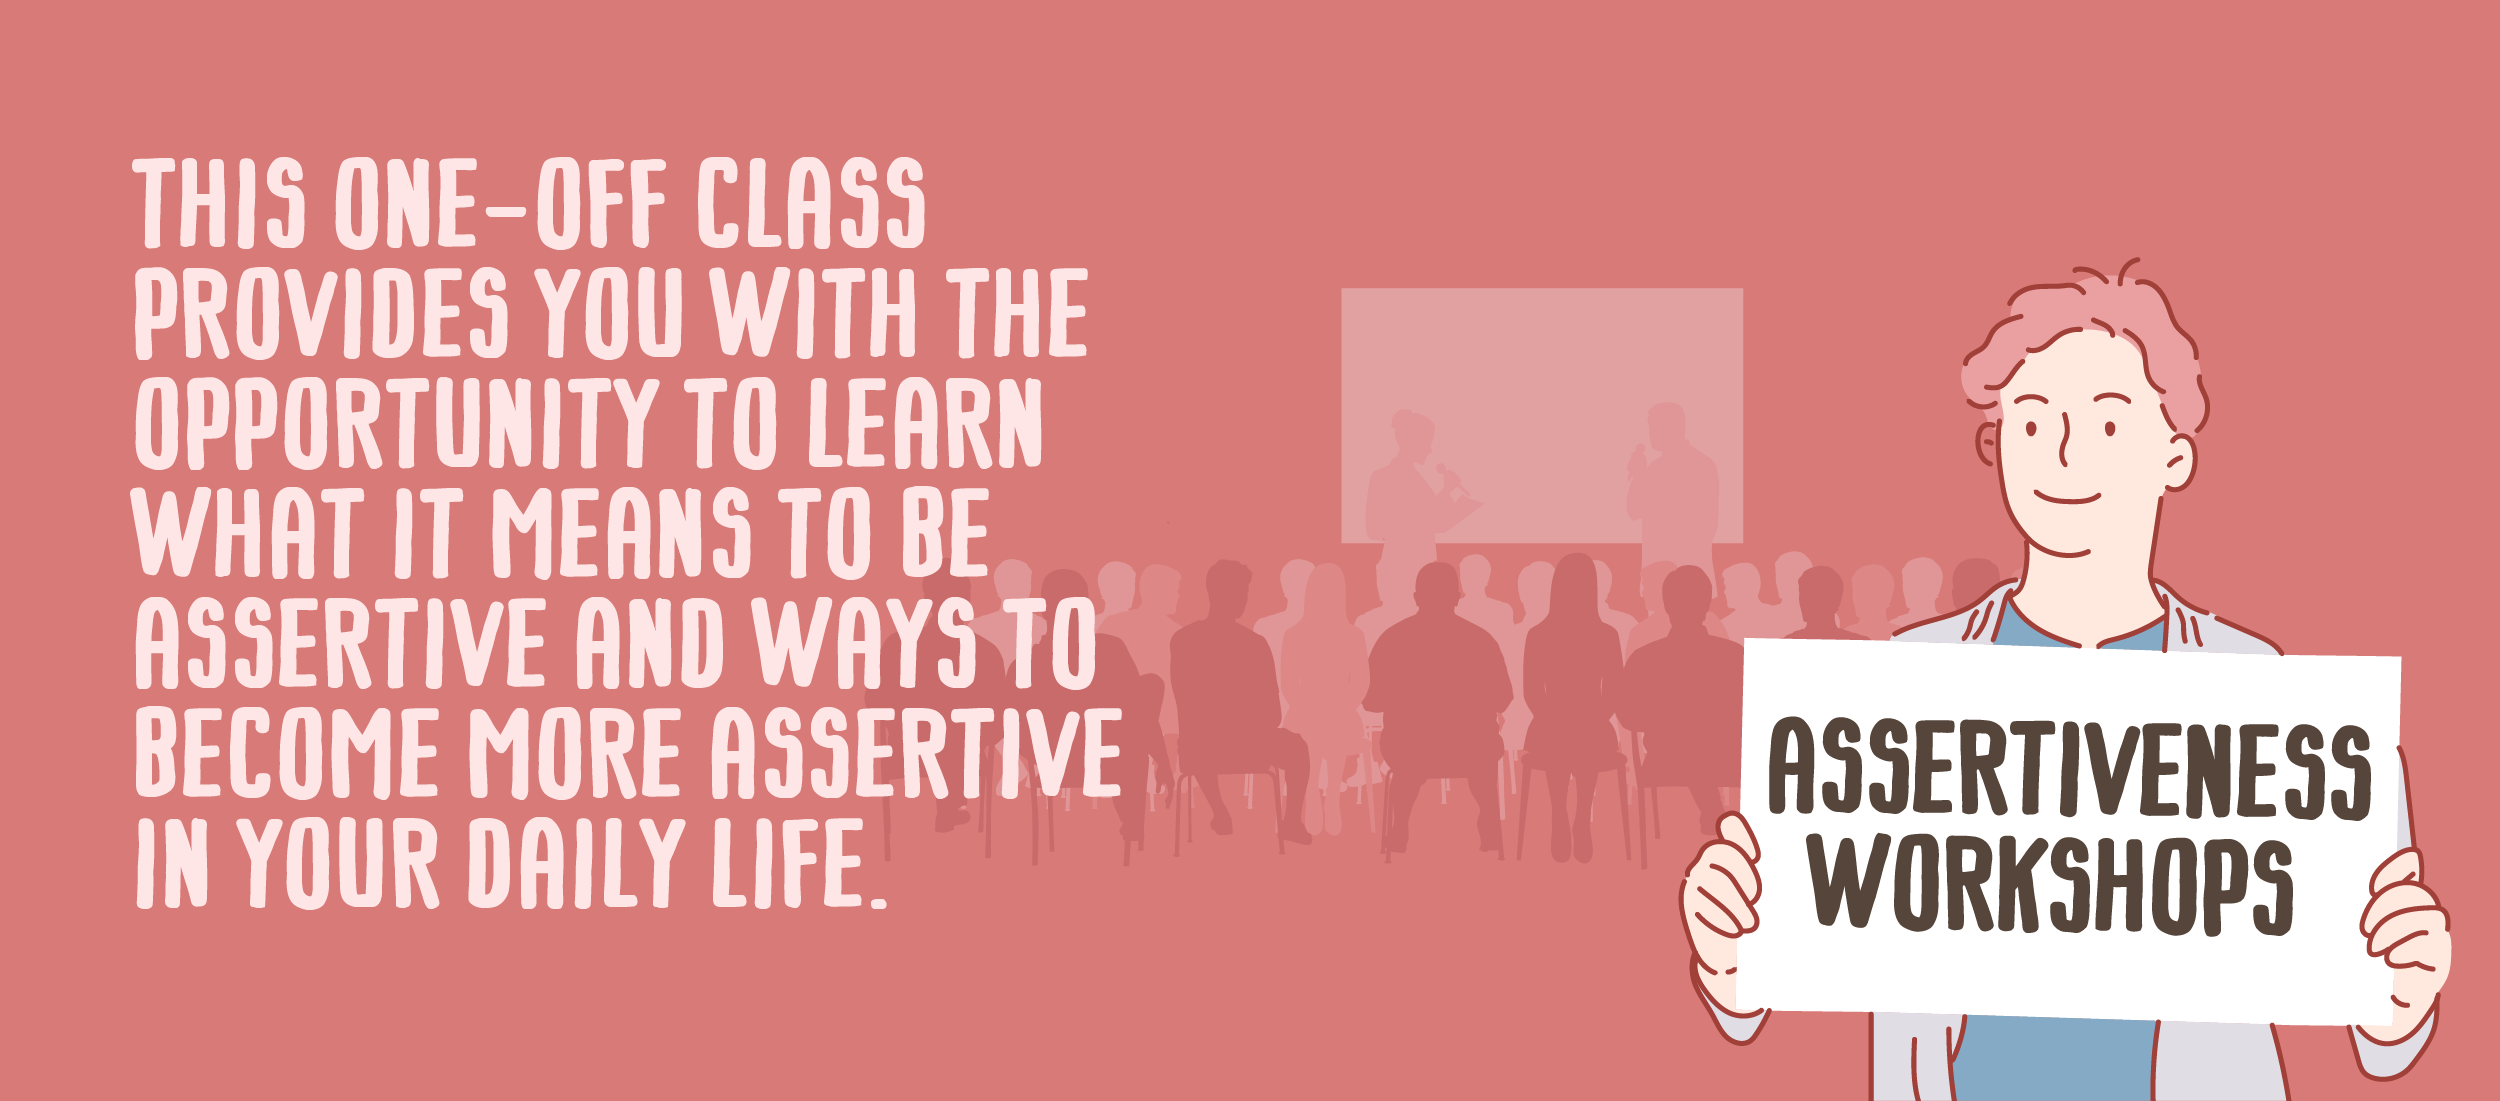 Assertiveness workshop slider